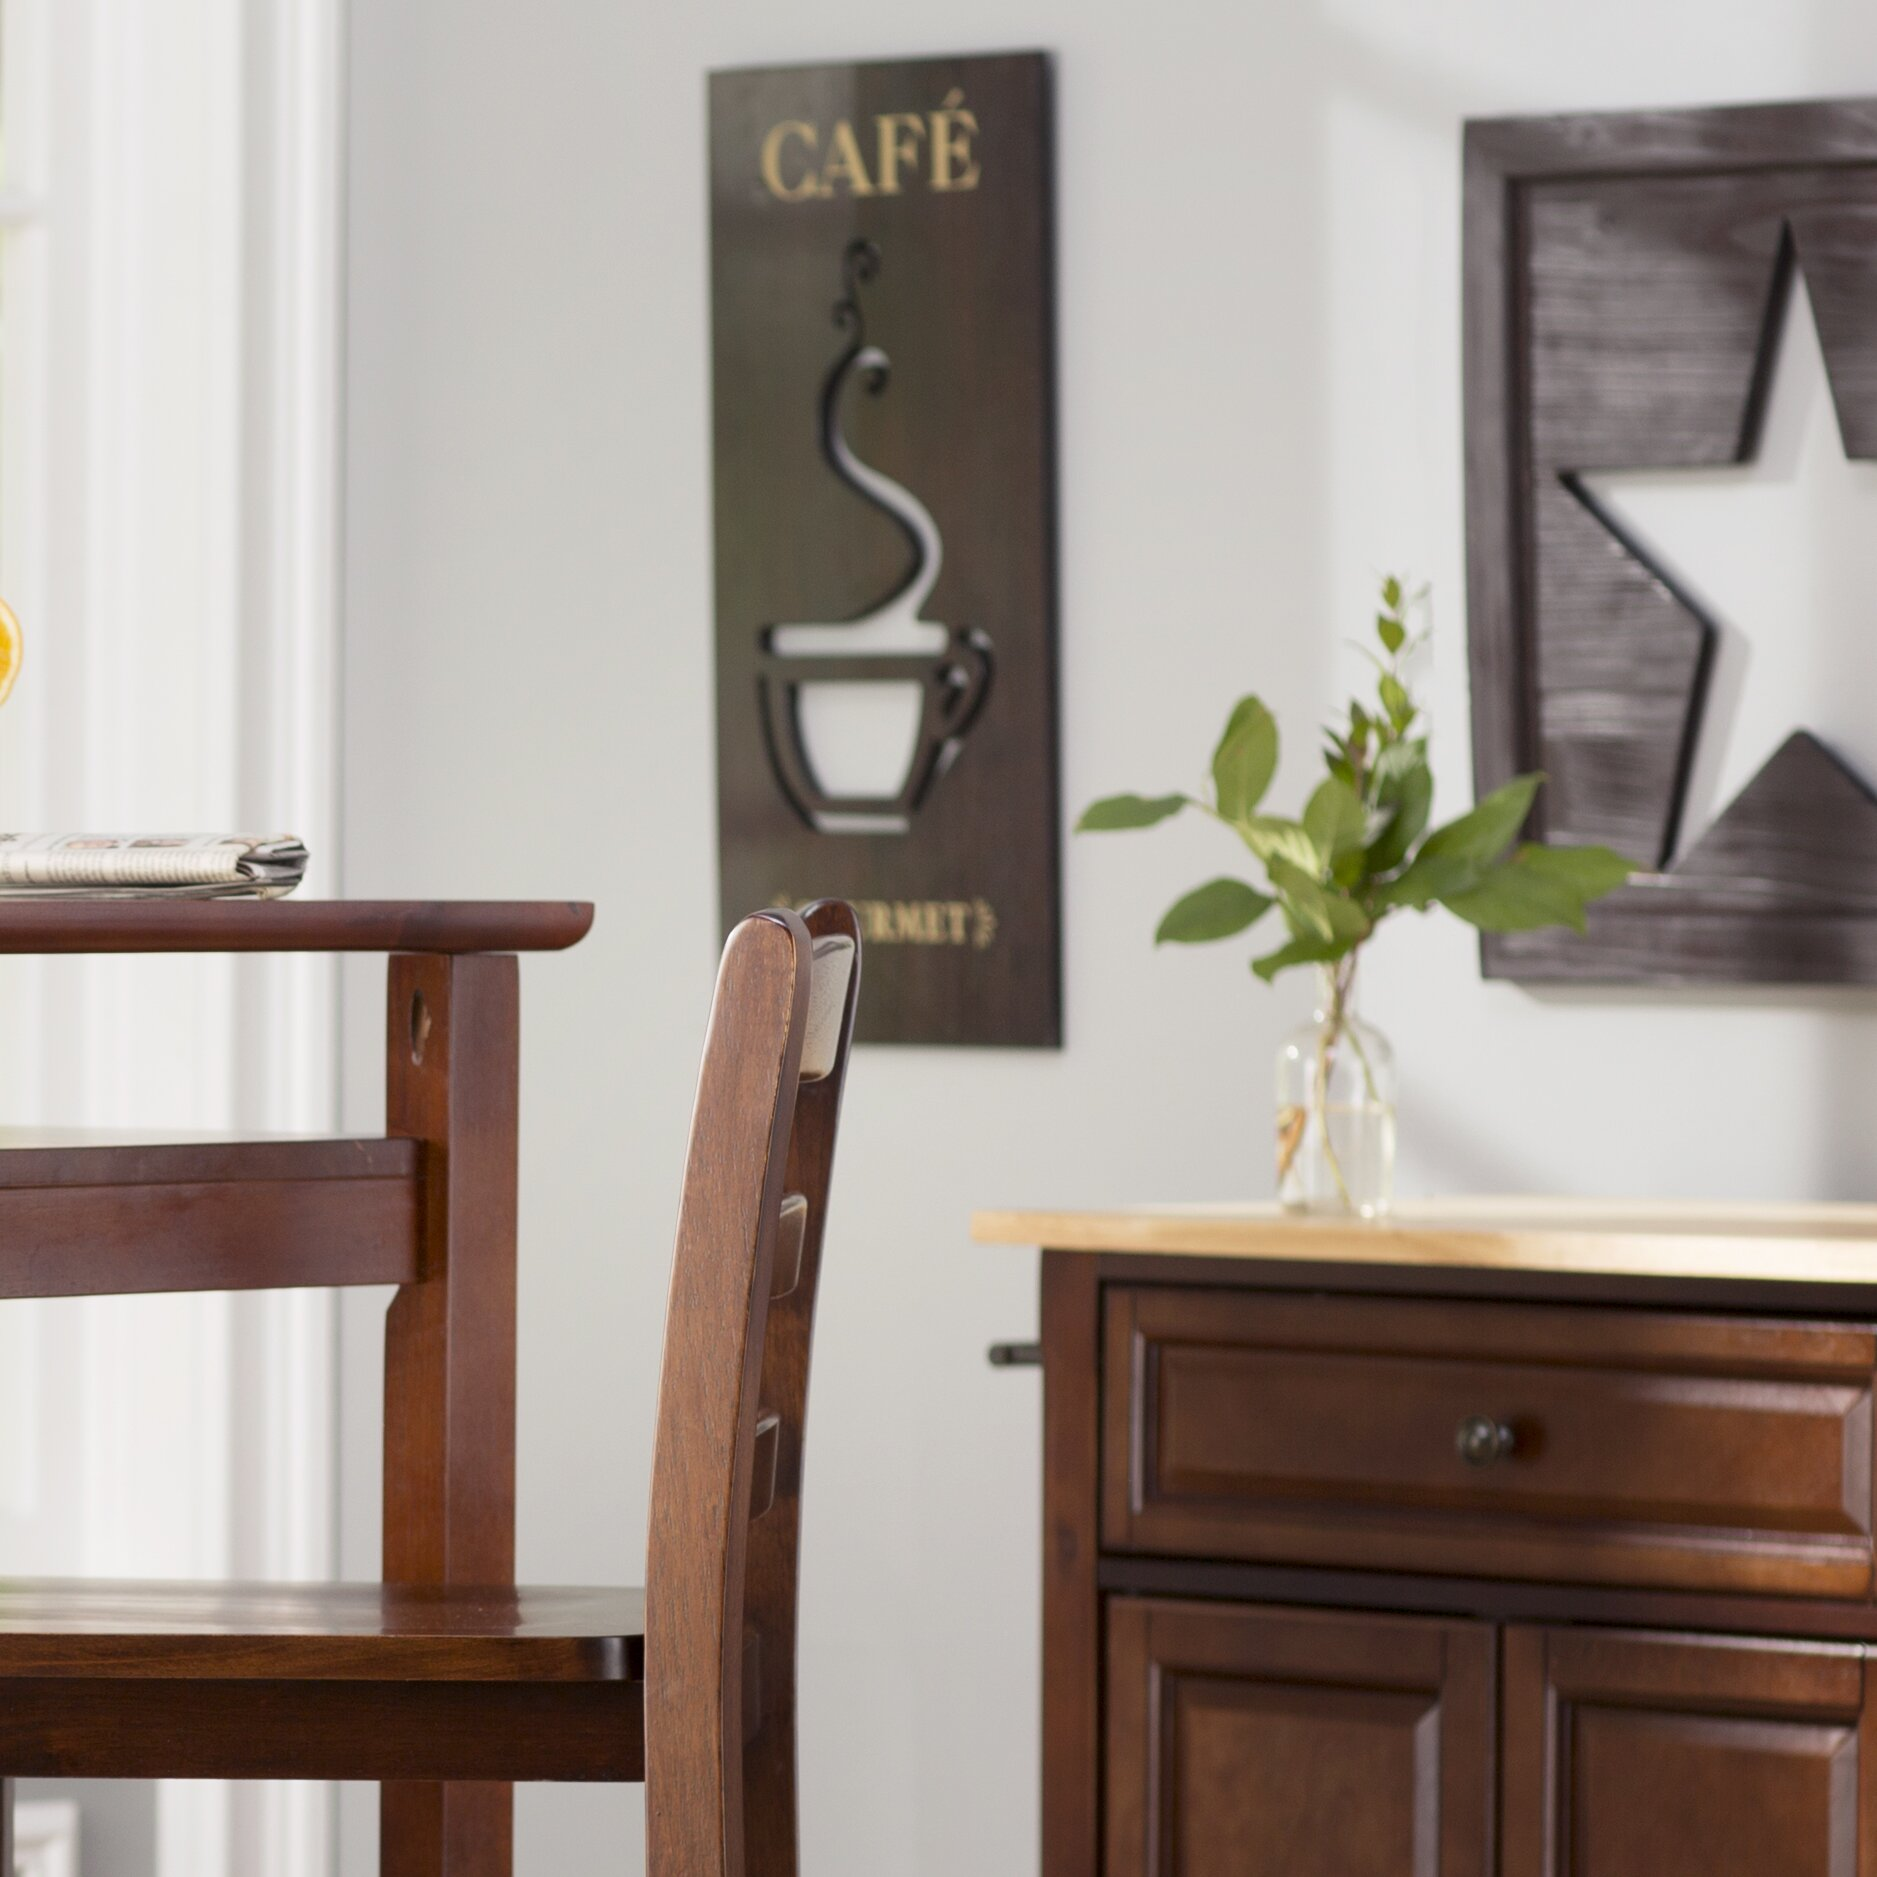 Charlton Home Rectangle With Coffee Cutout Wall Decor